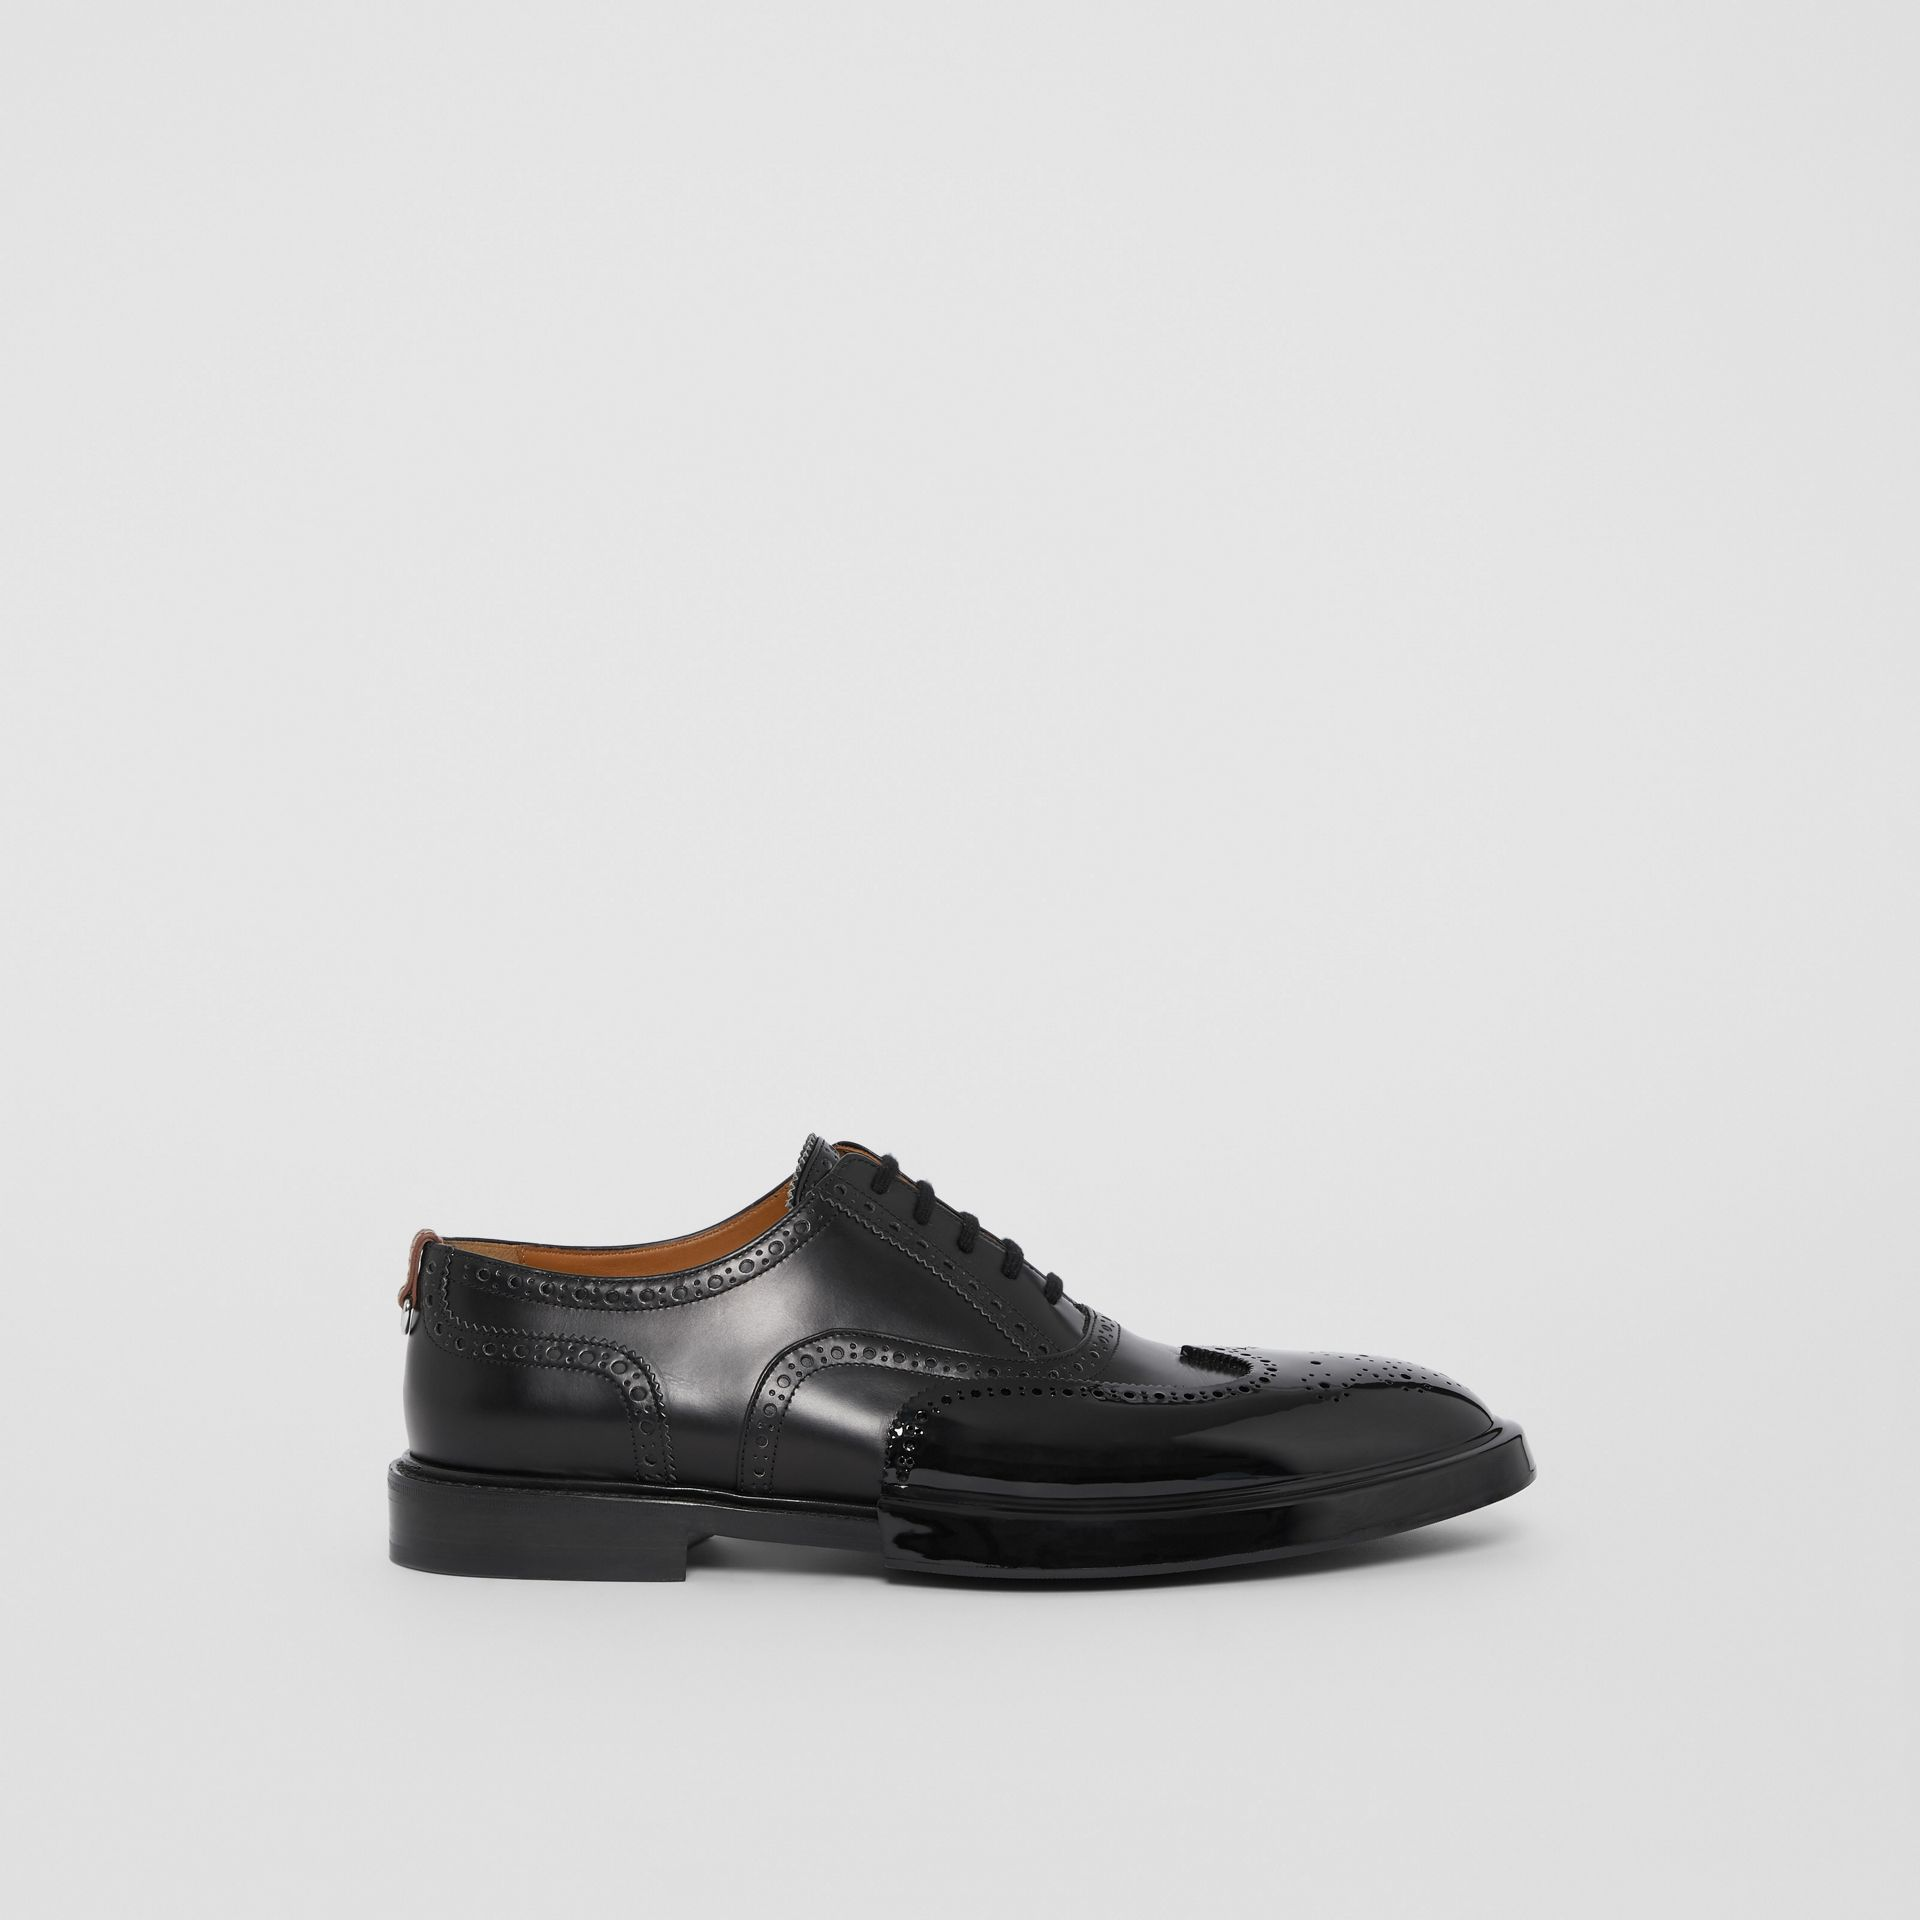 Toe Cap Detail Leather Oxford Brogues in Black - Men | Burberry United Kingdom - gallery image 5